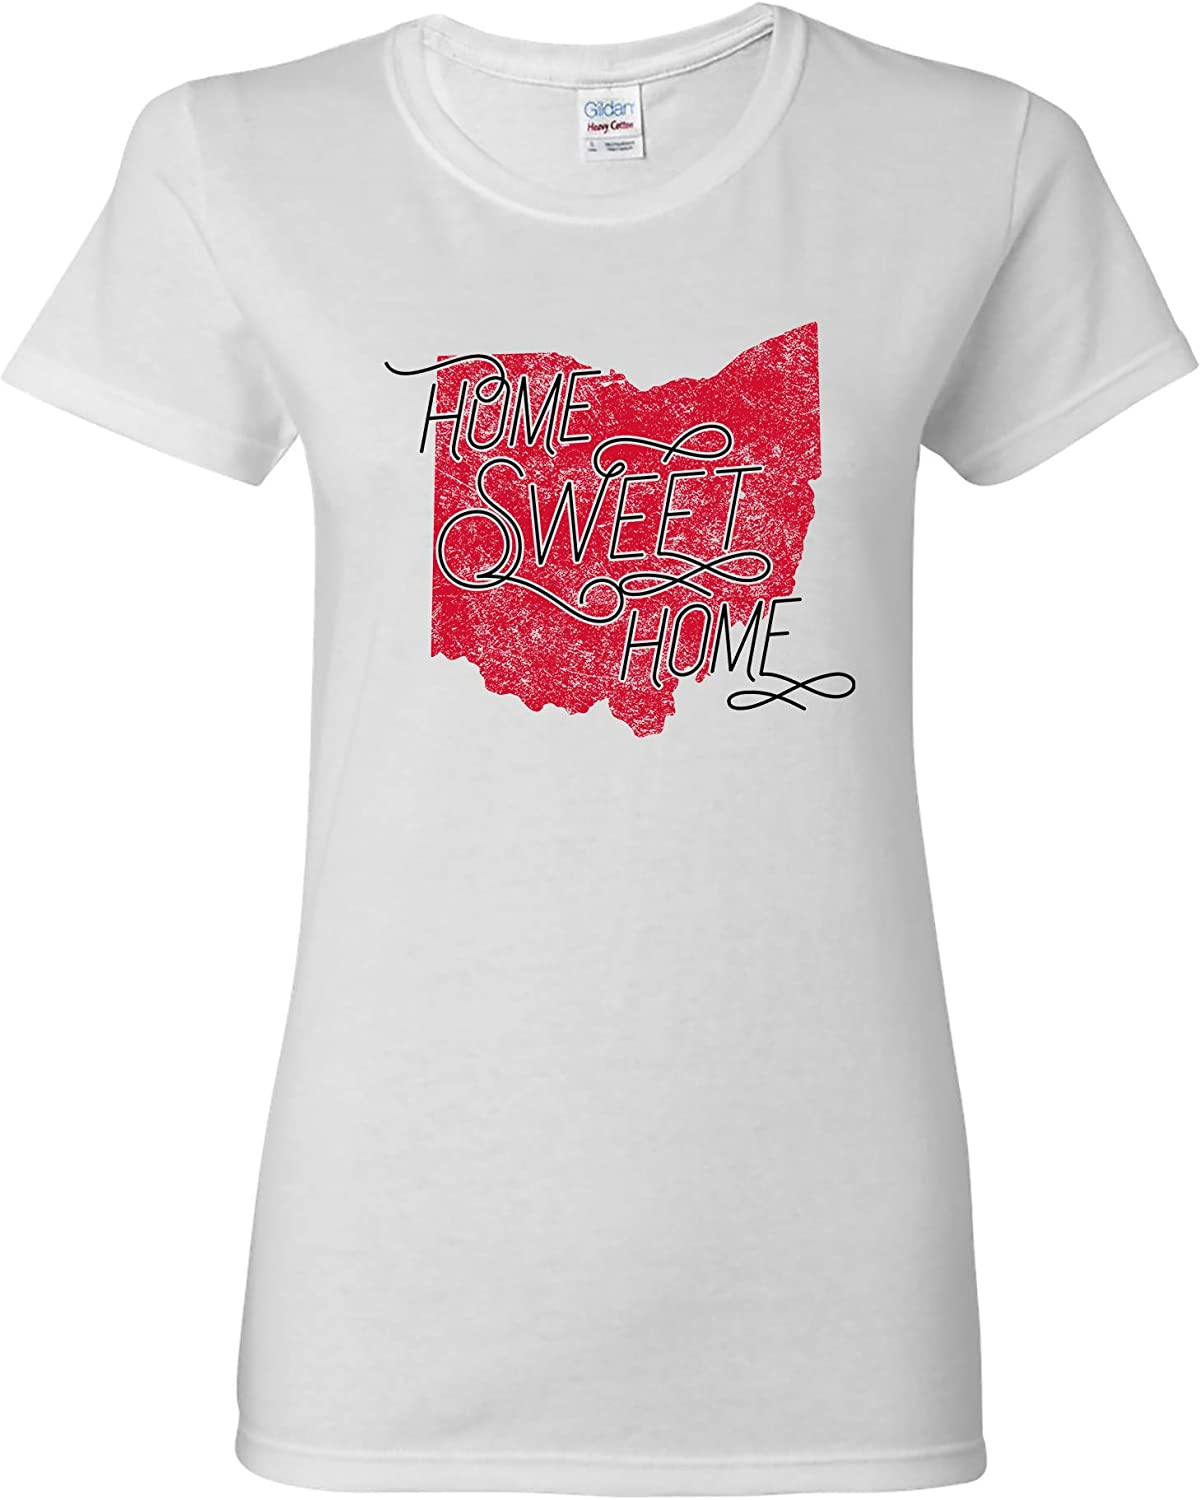 UGP Campus Apparel Ohio Home Sweet Home - State America Pride Womens T Shirt - Small - White